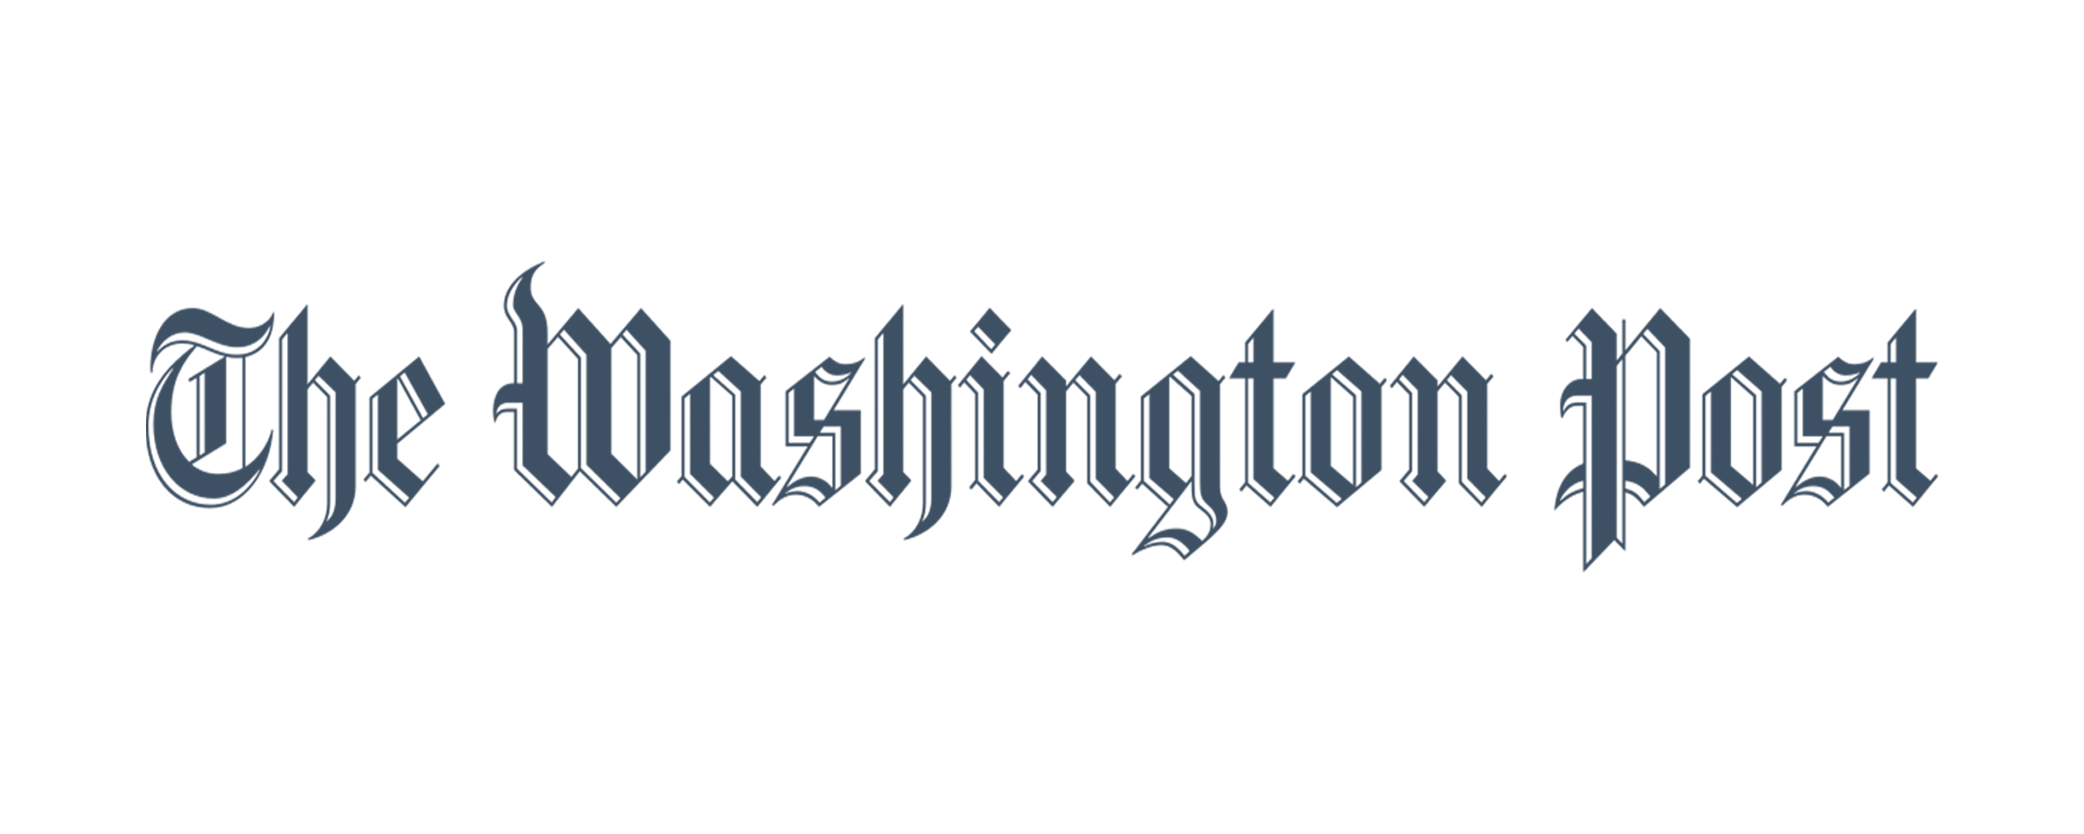 The Well The Washington Post